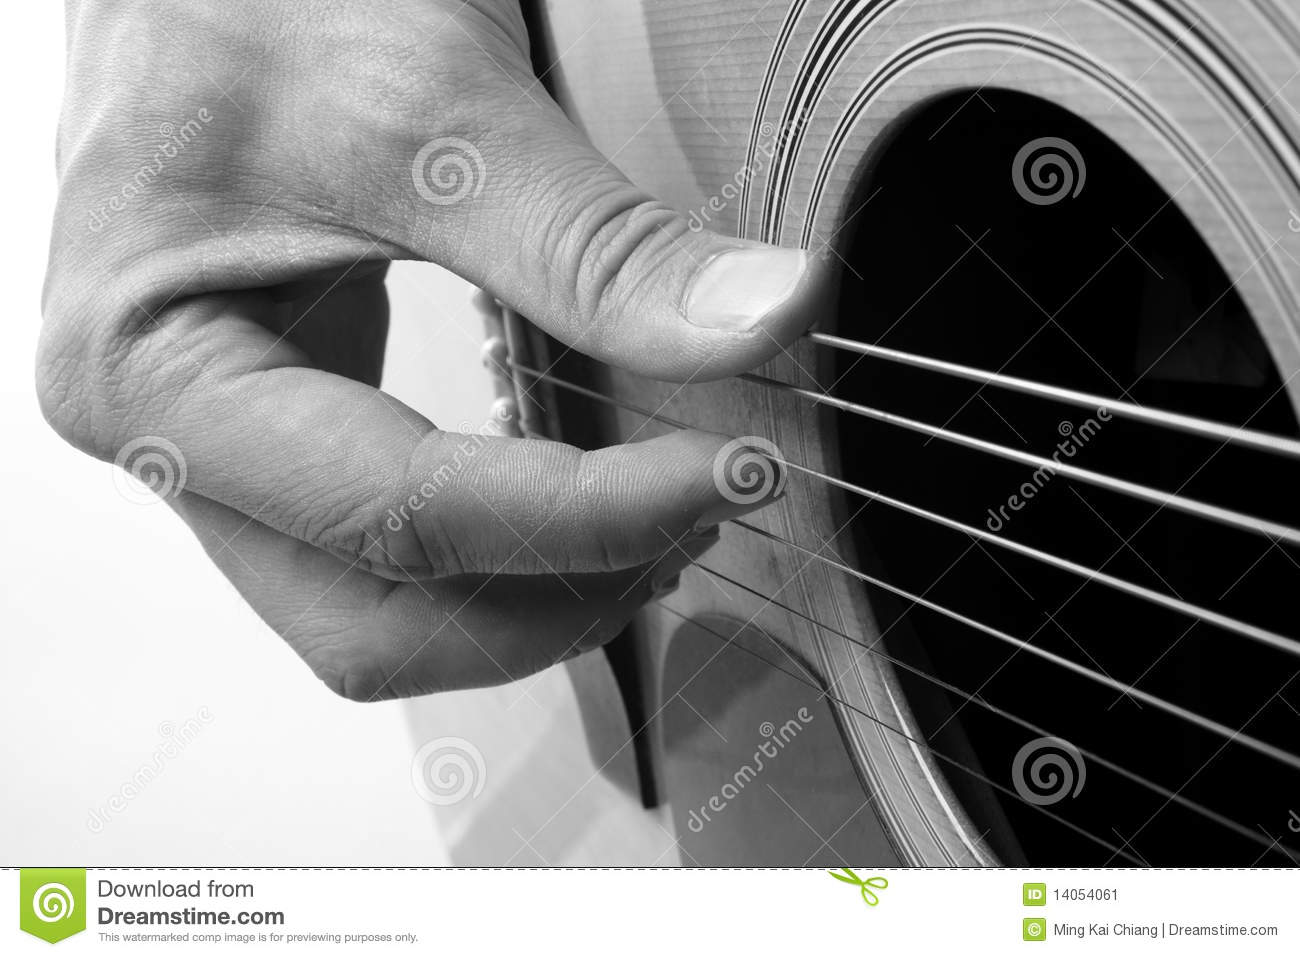 Playing Acoustic Guitar Close-up Stock Image - Image: 14054061